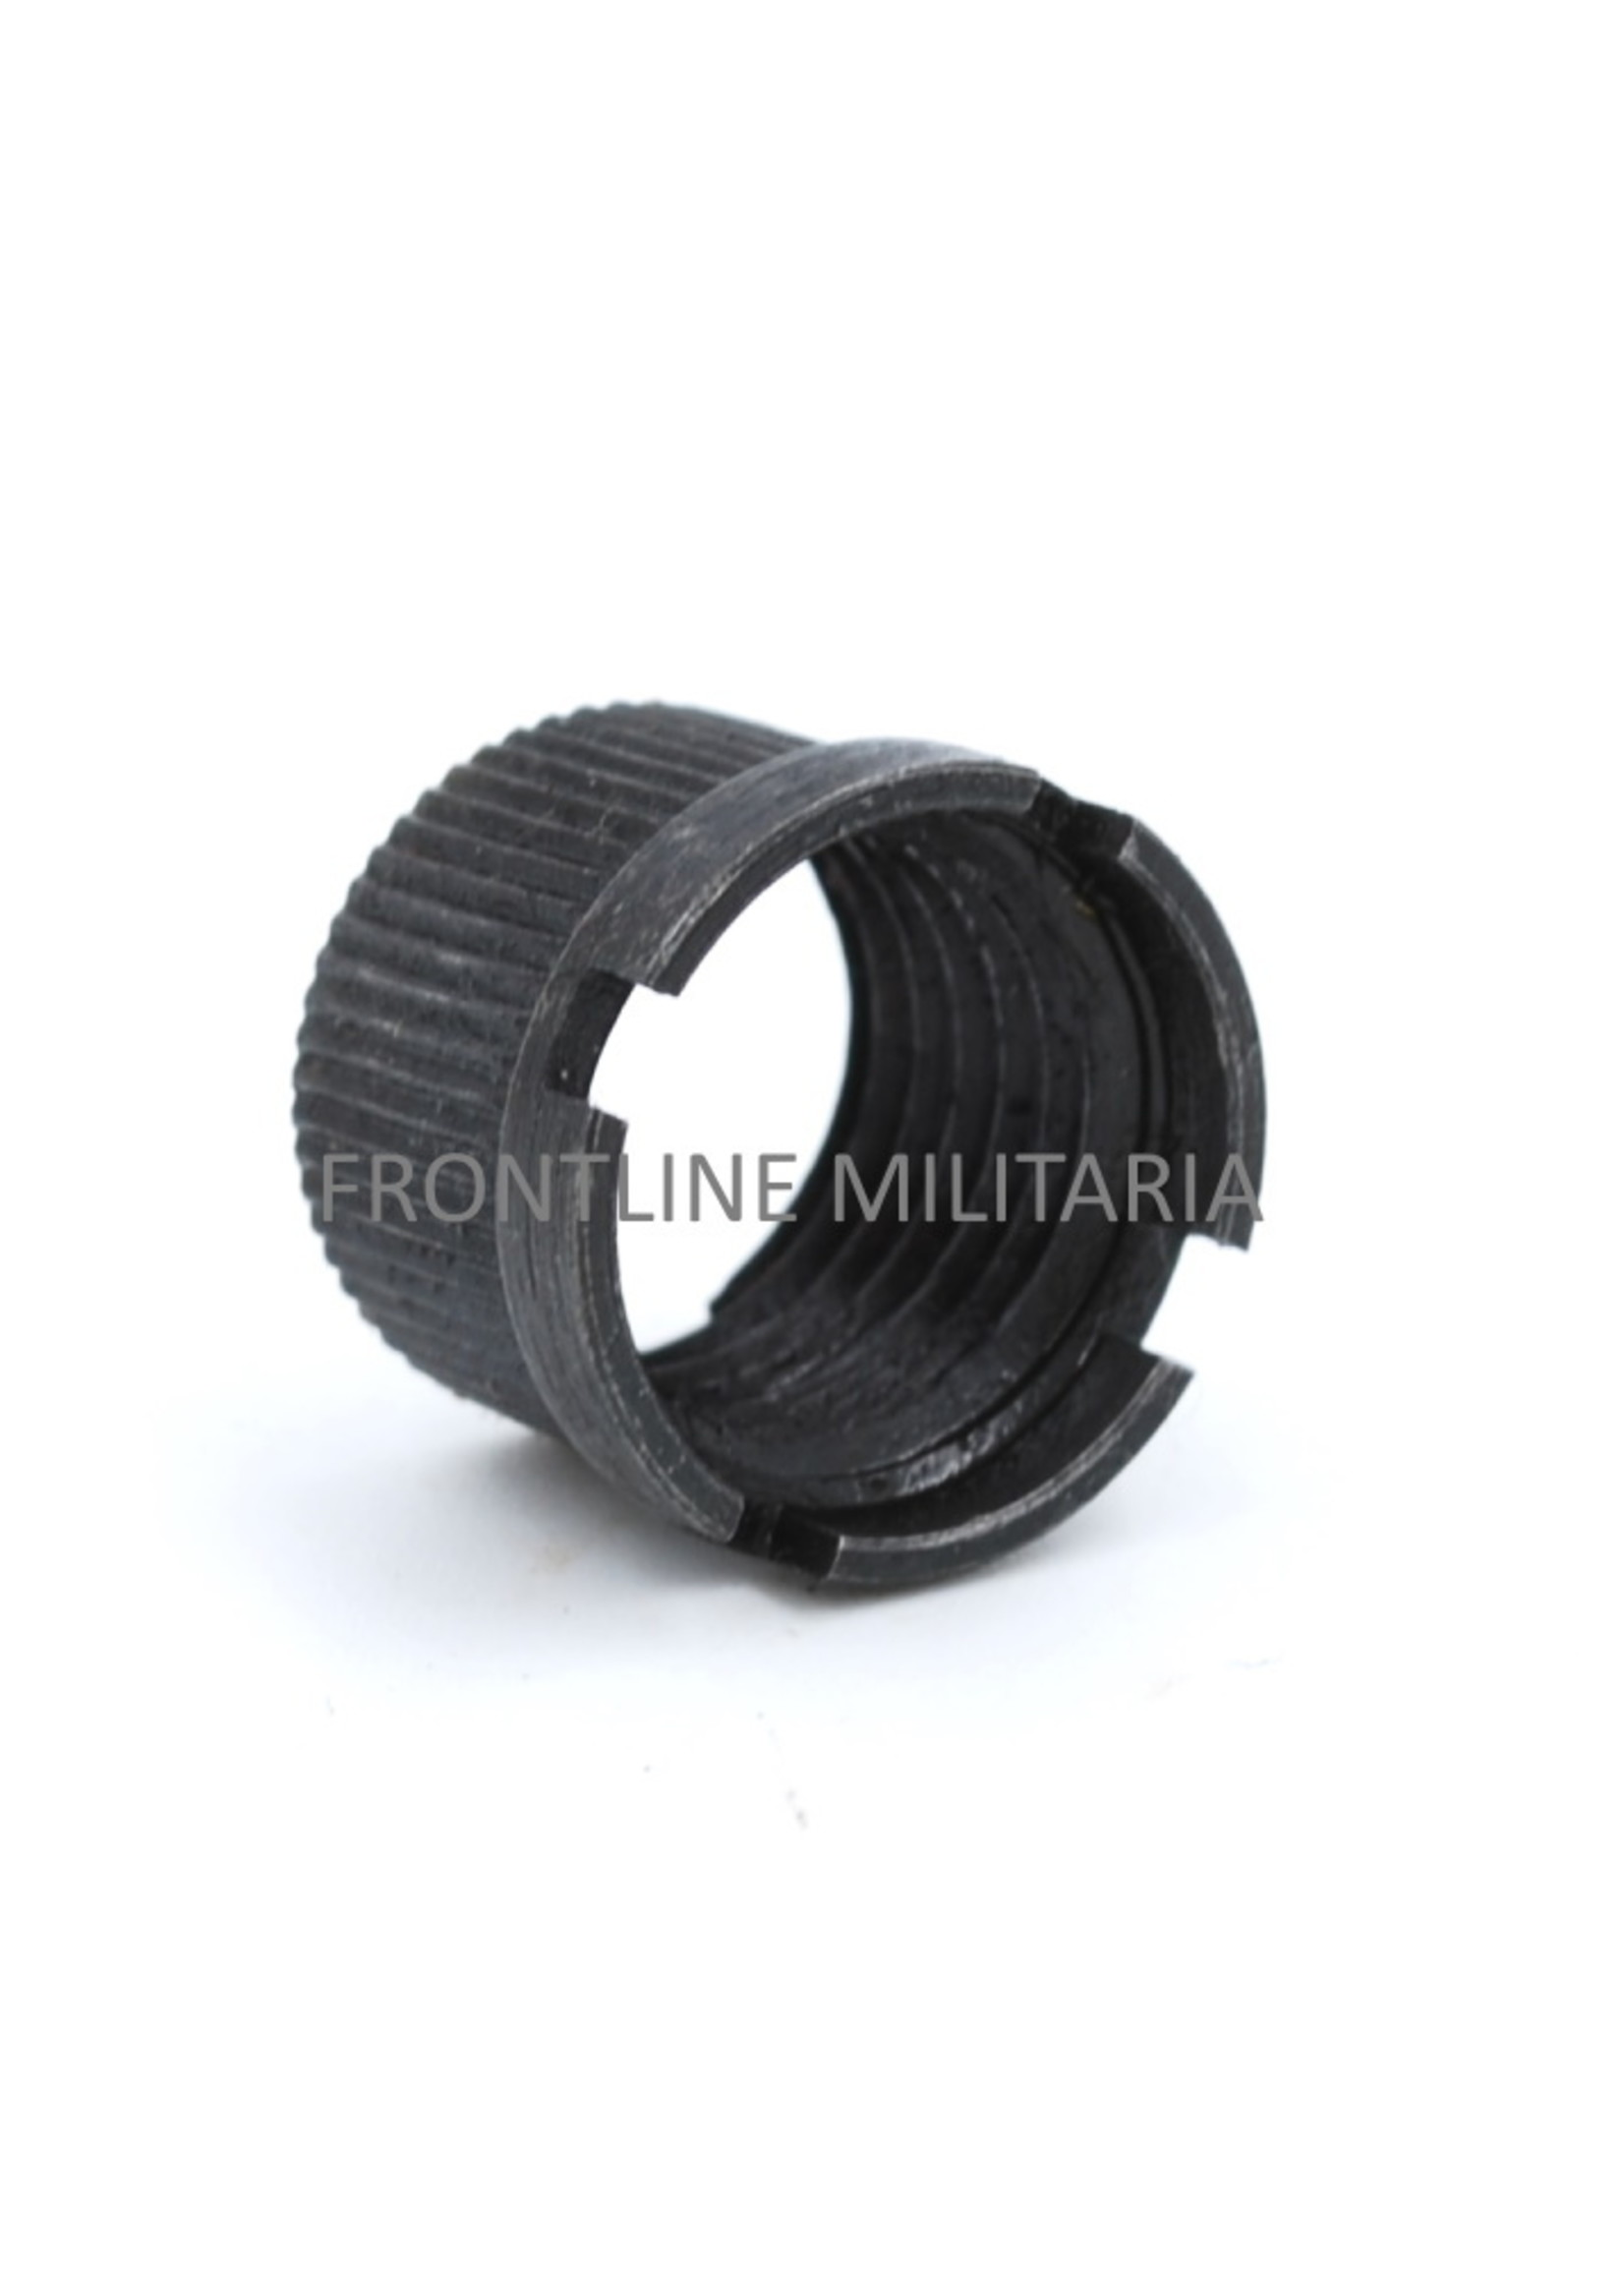 Muzzle nut for the G43 and K43 Rifle